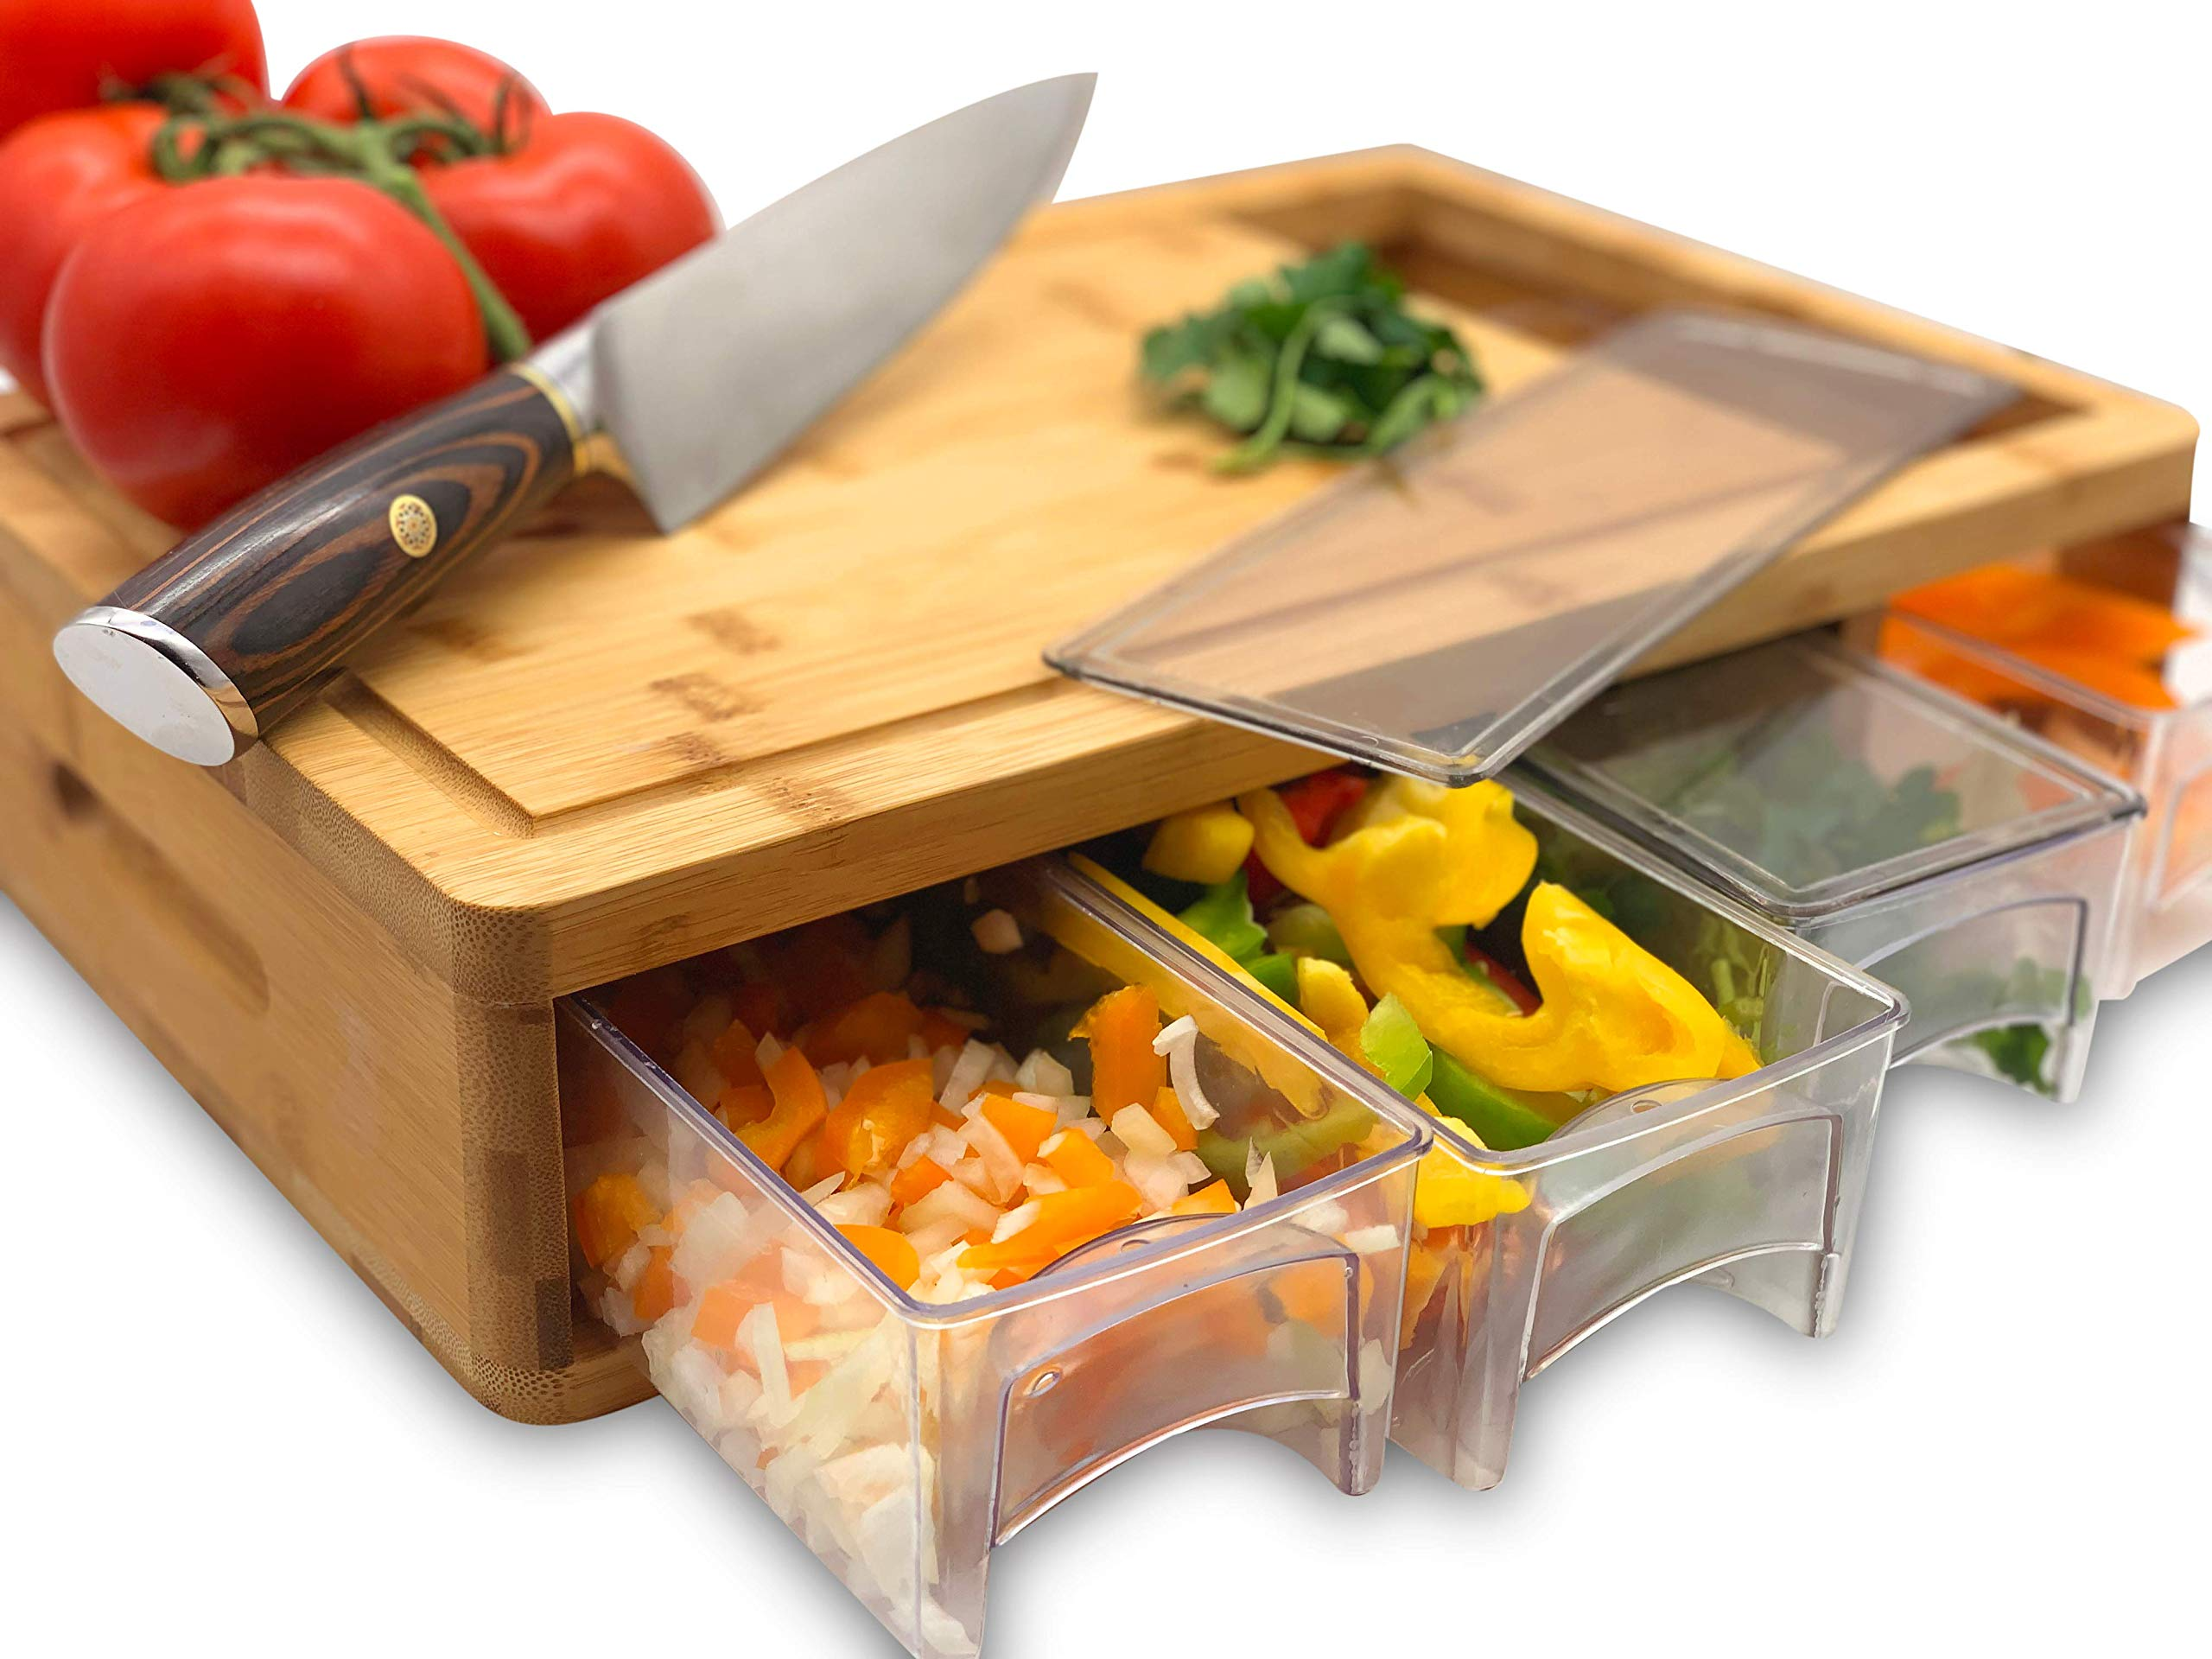 Bamboo Cutting Board With Trays and LIDS. Multi-functional: 4 draws can be used as PREP DISHES or for STORAGE. Design with juice grooves, handles, and a large opening to EFFICIENTLY SLIDE food into! by Simpli Better (Image #1)